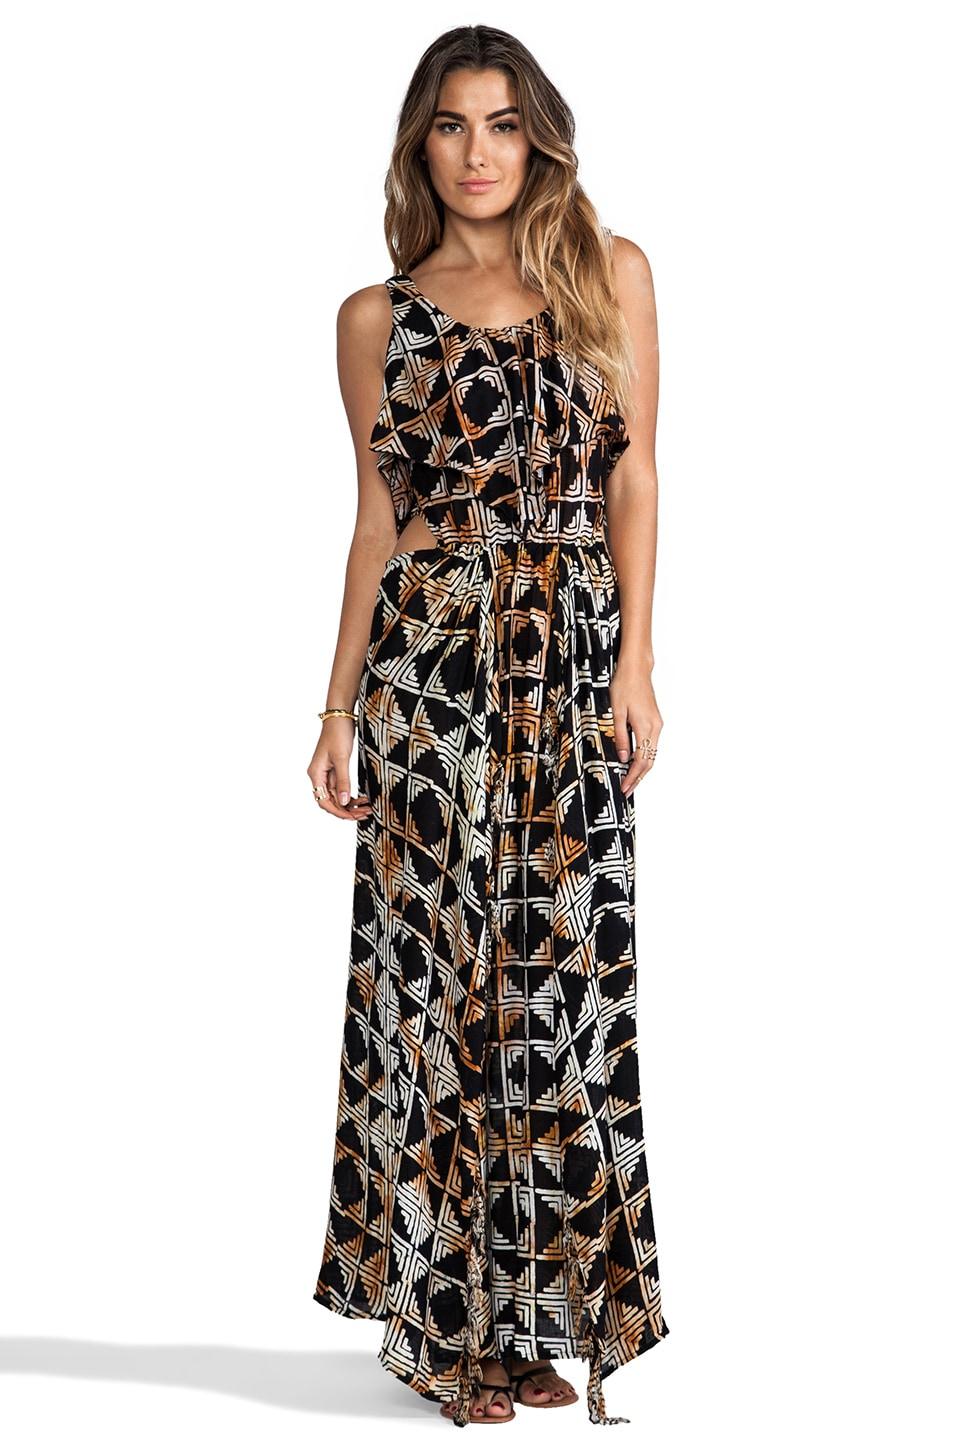 Indah Zanzibar Flounce Cut Out Maxi Dress in Black Tahiti